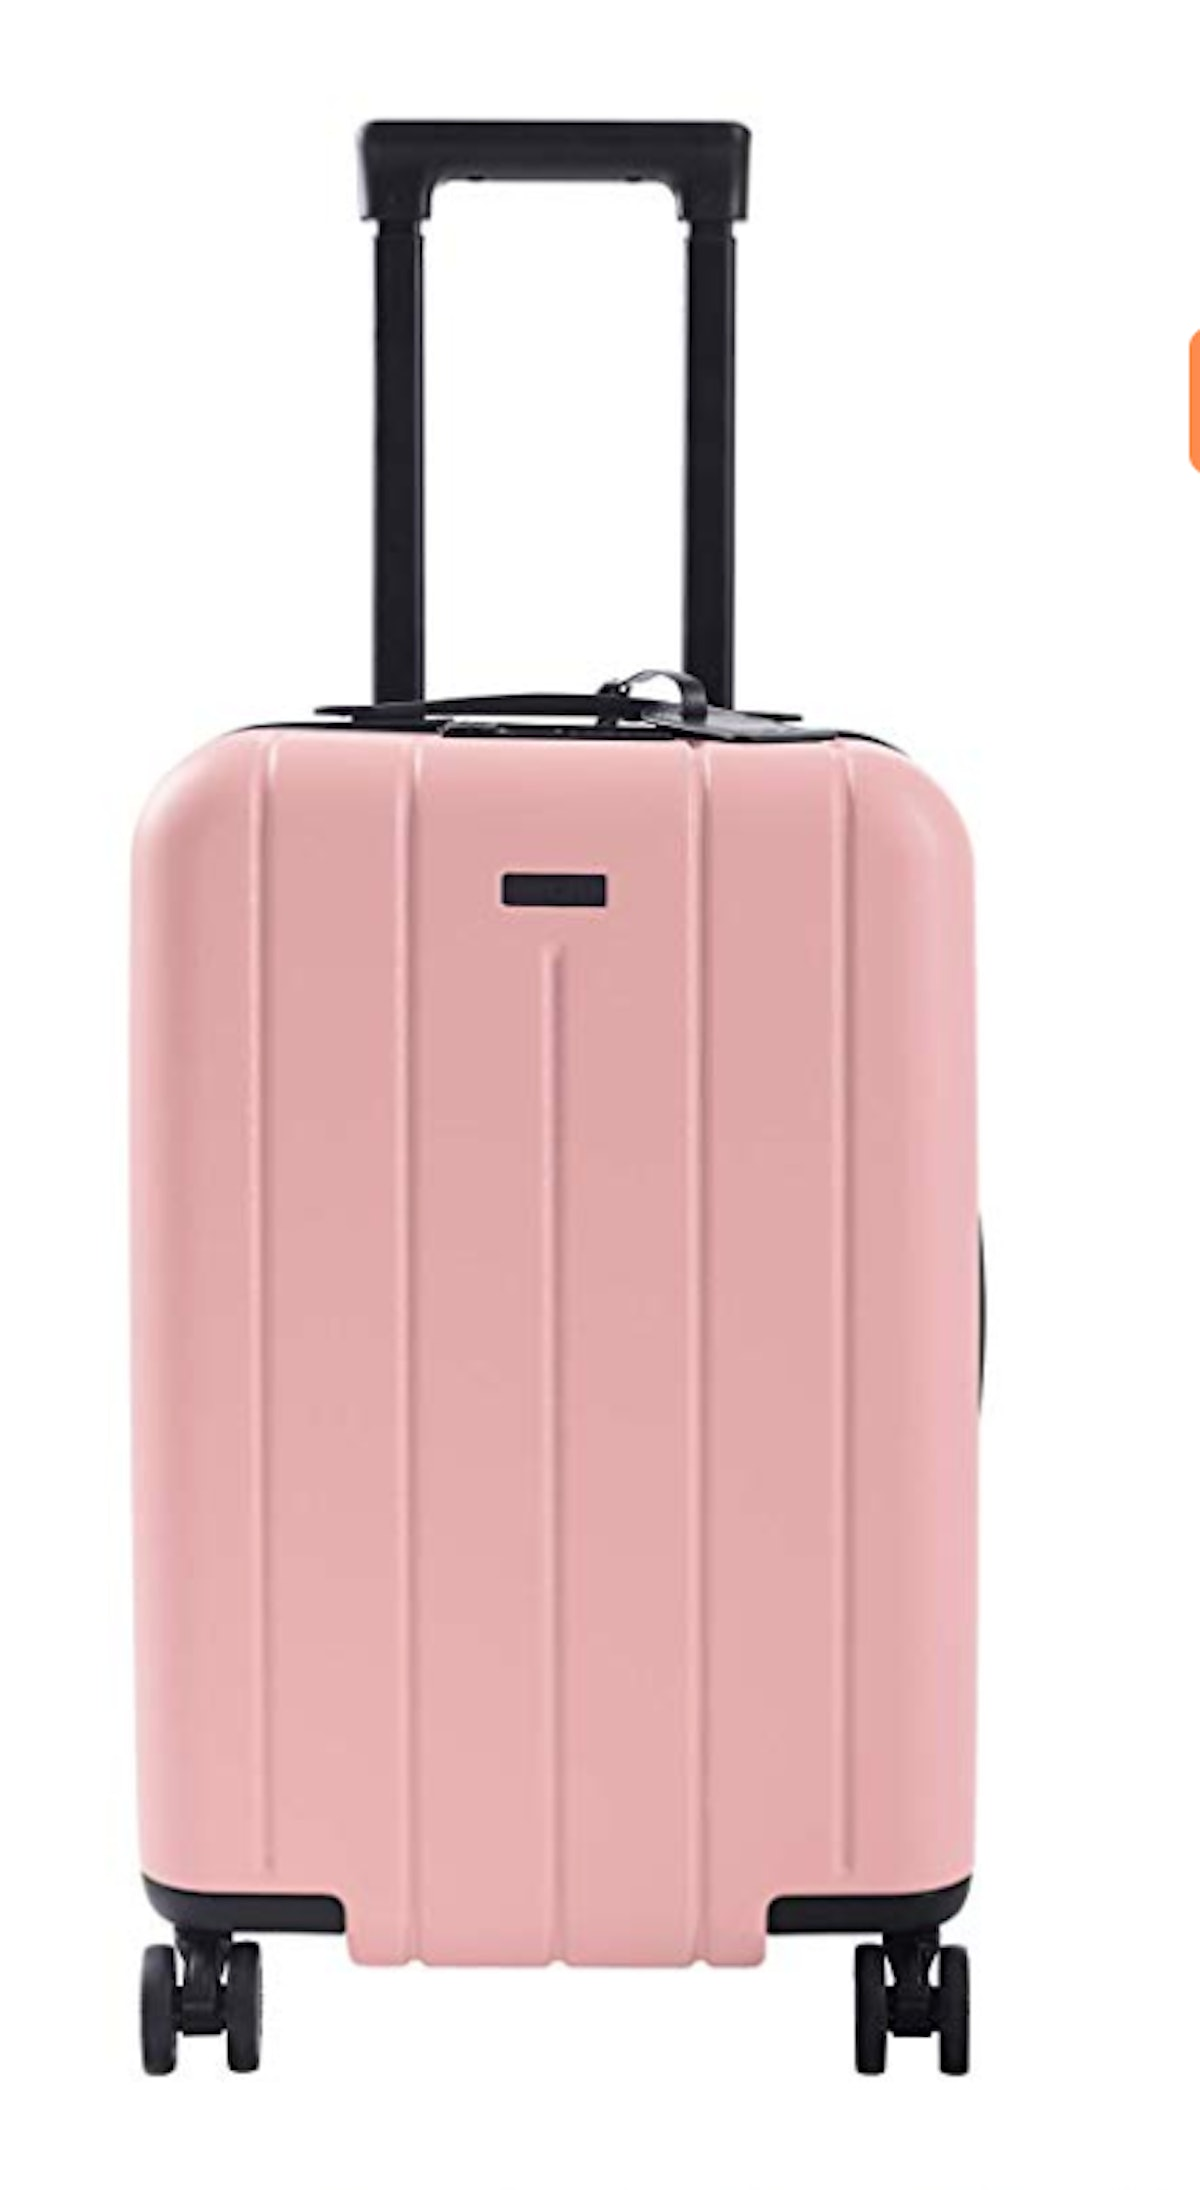 """CHESTER Carry-On Luggage/22"""" Lightweight Polycarbonate Hardshell/Spinner/TSA Approved/Cabin Size"""